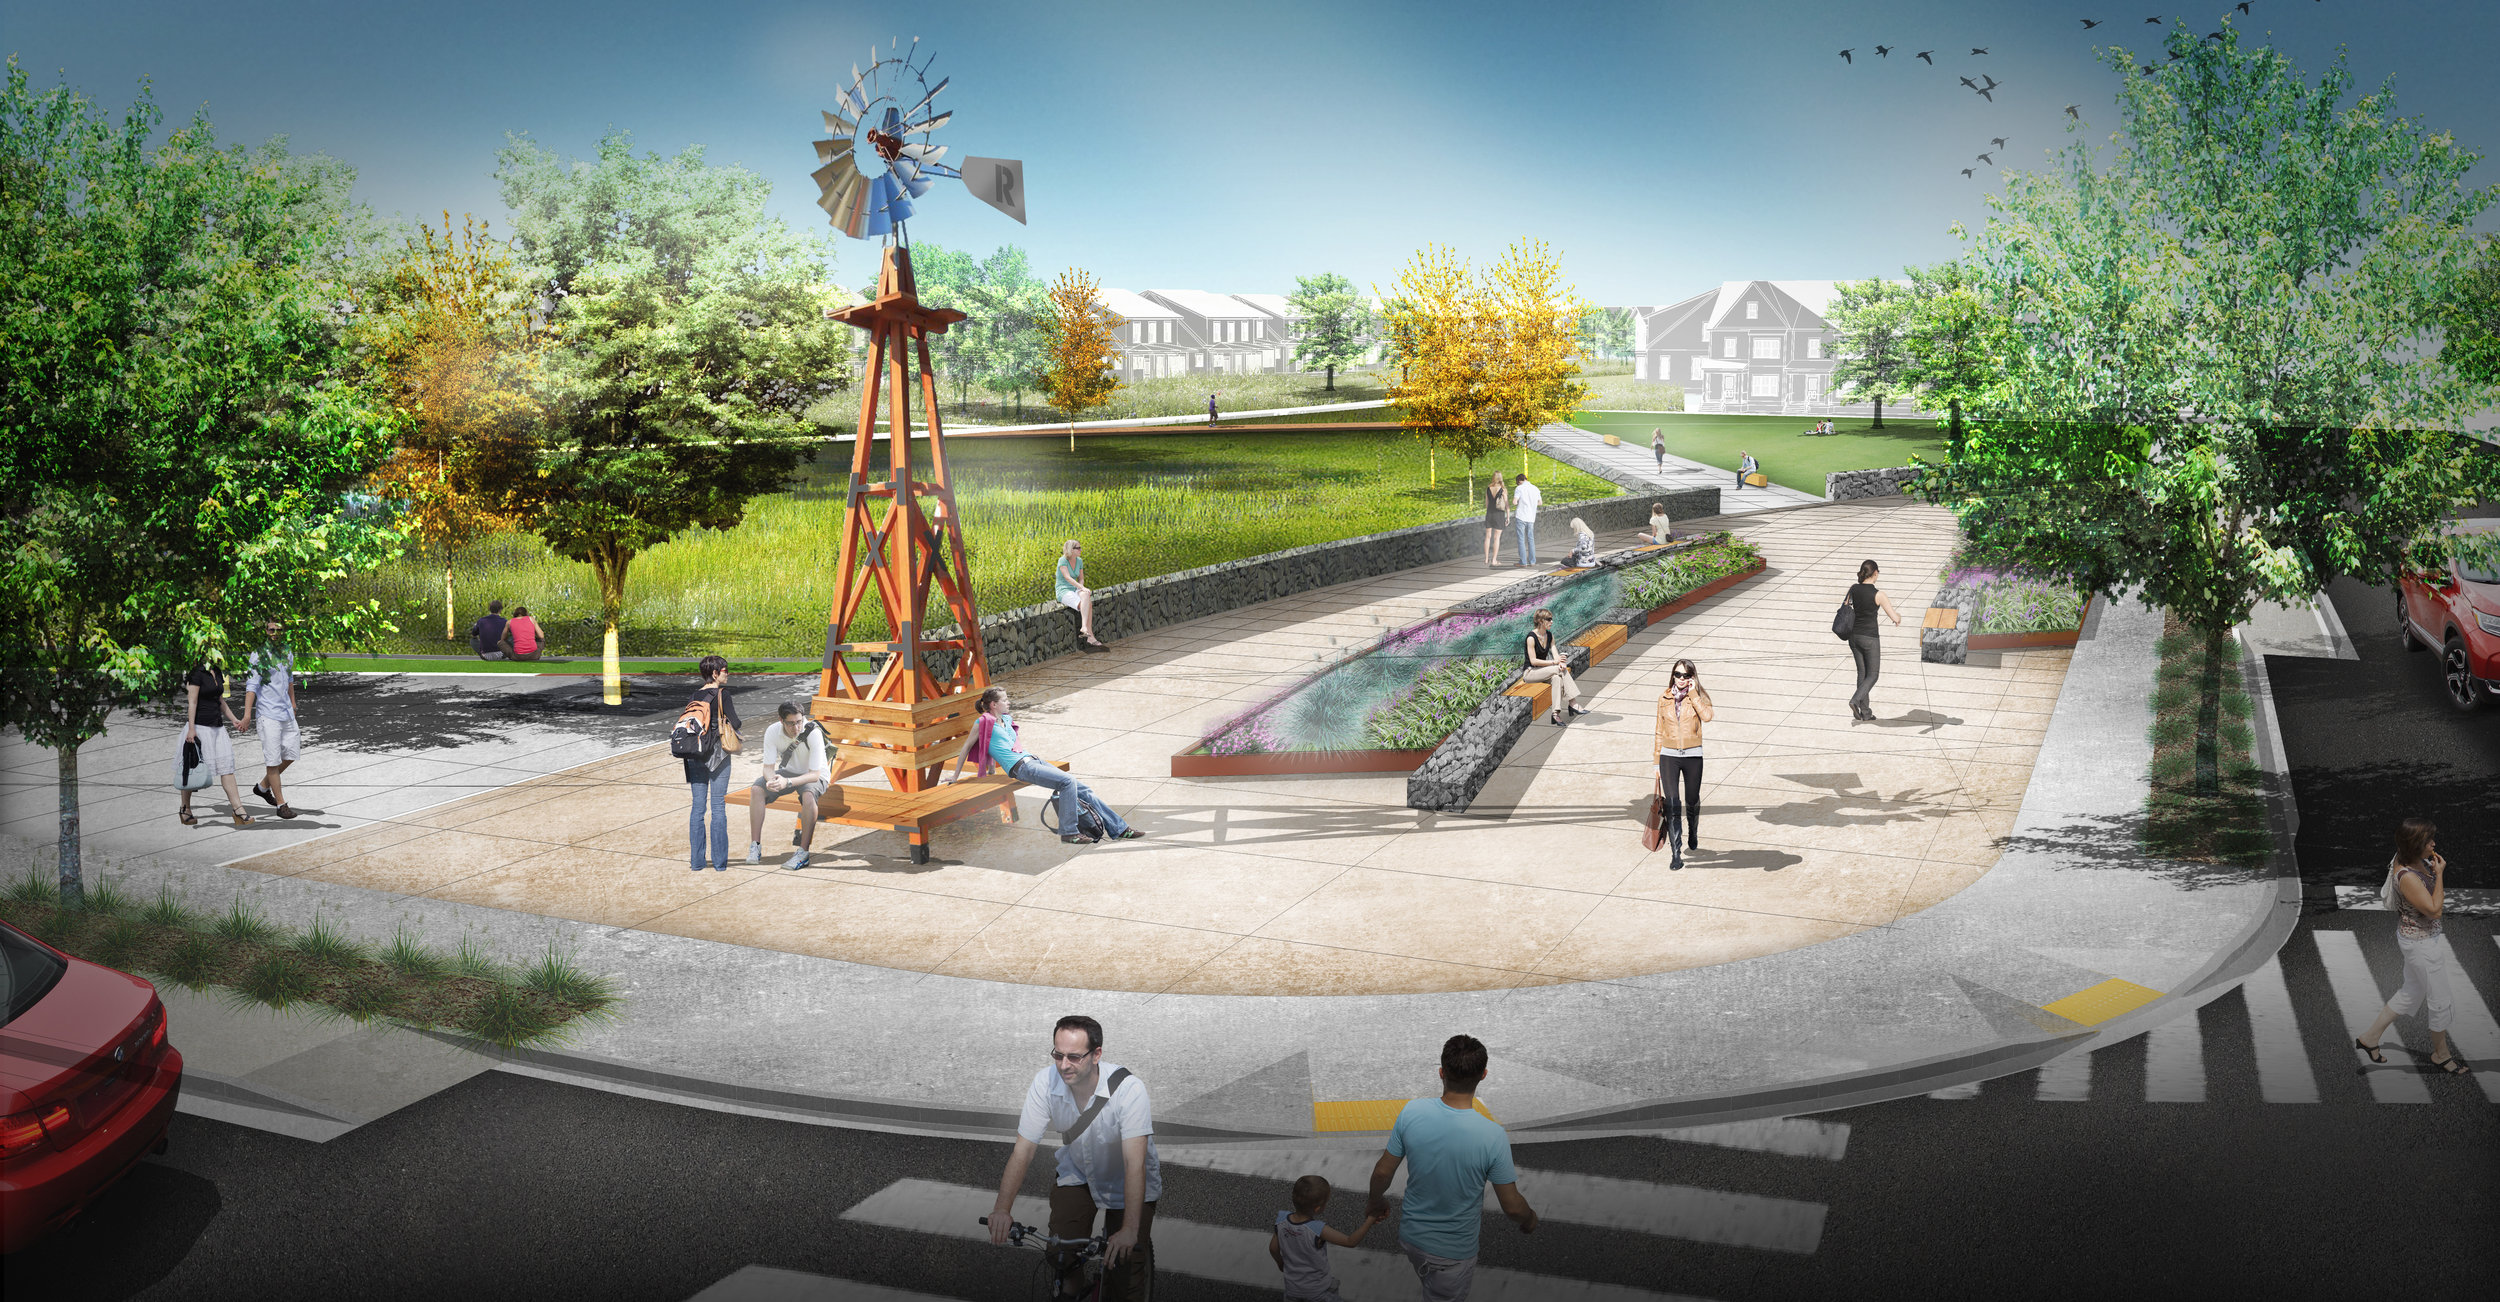 illustration of windmill on street corner with park in background